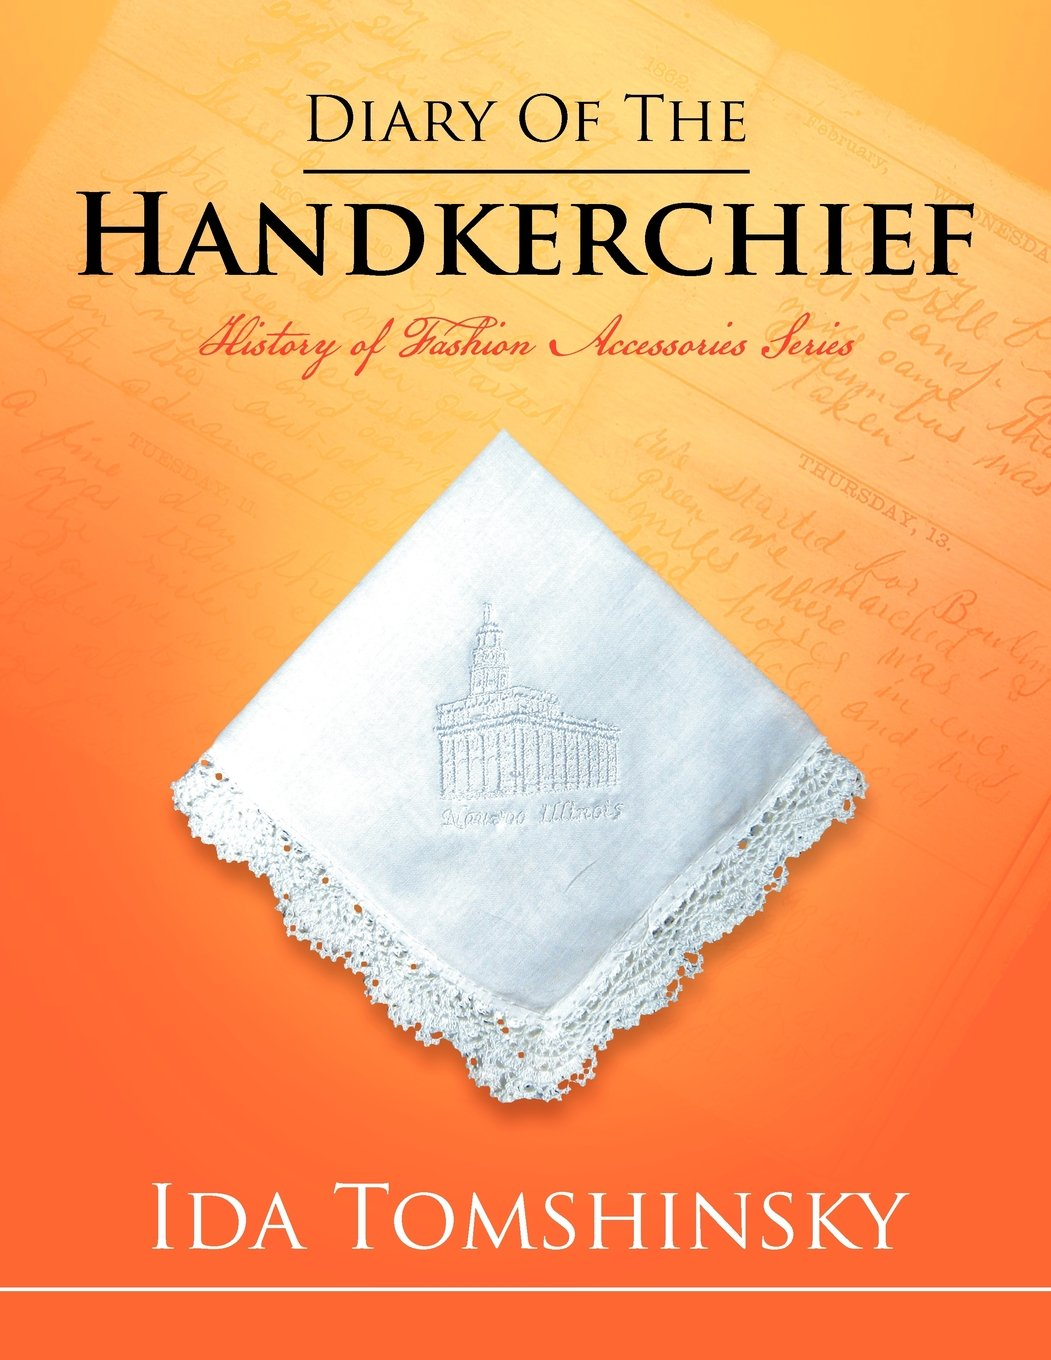 Diary of the Handkerchief: History of Fashion Accessories Series pdf